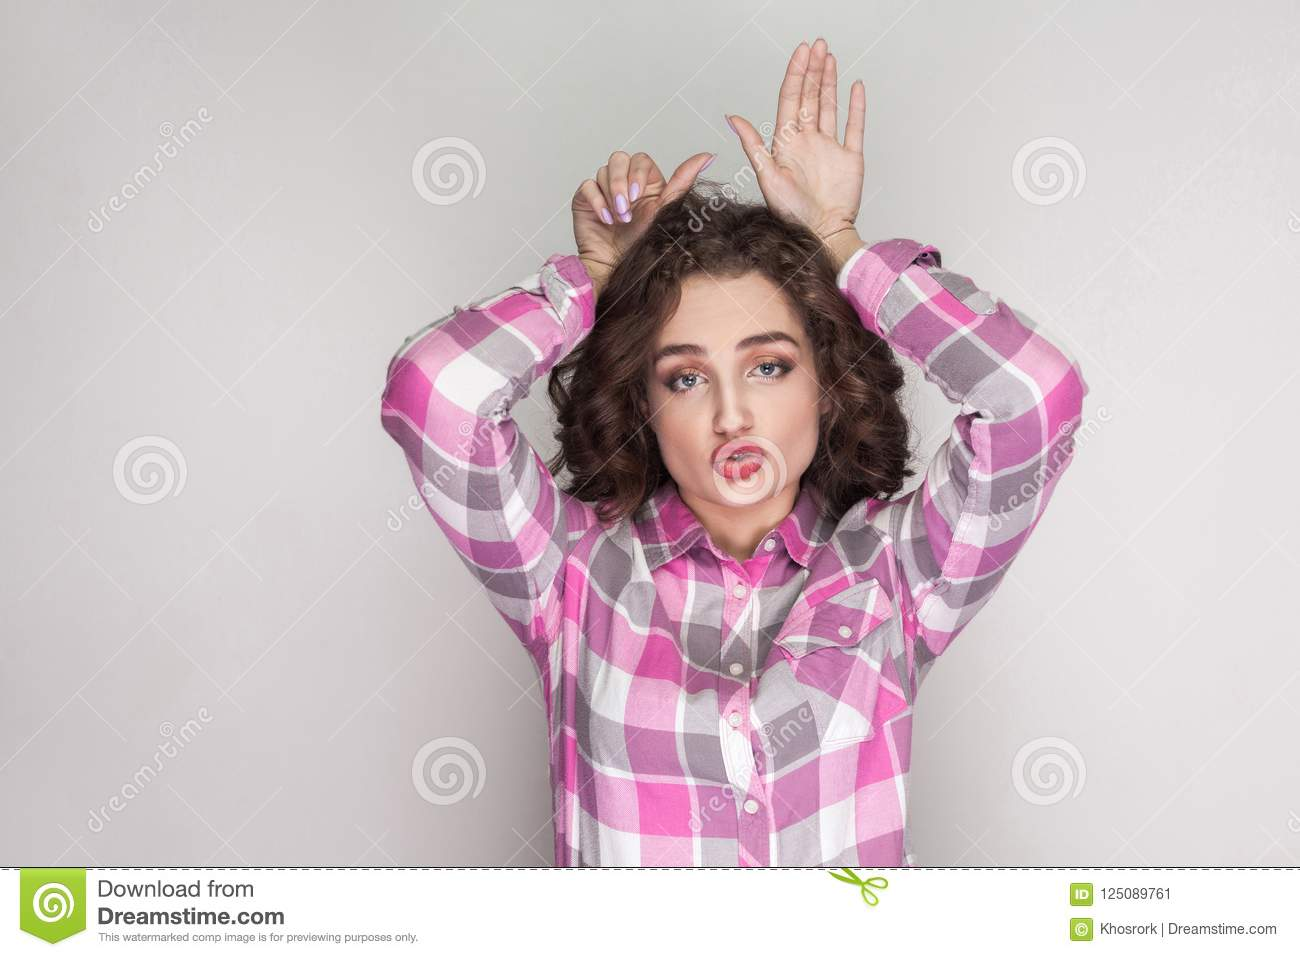 Funny beautiful girl with pink checkered shirt, curly hairstyle